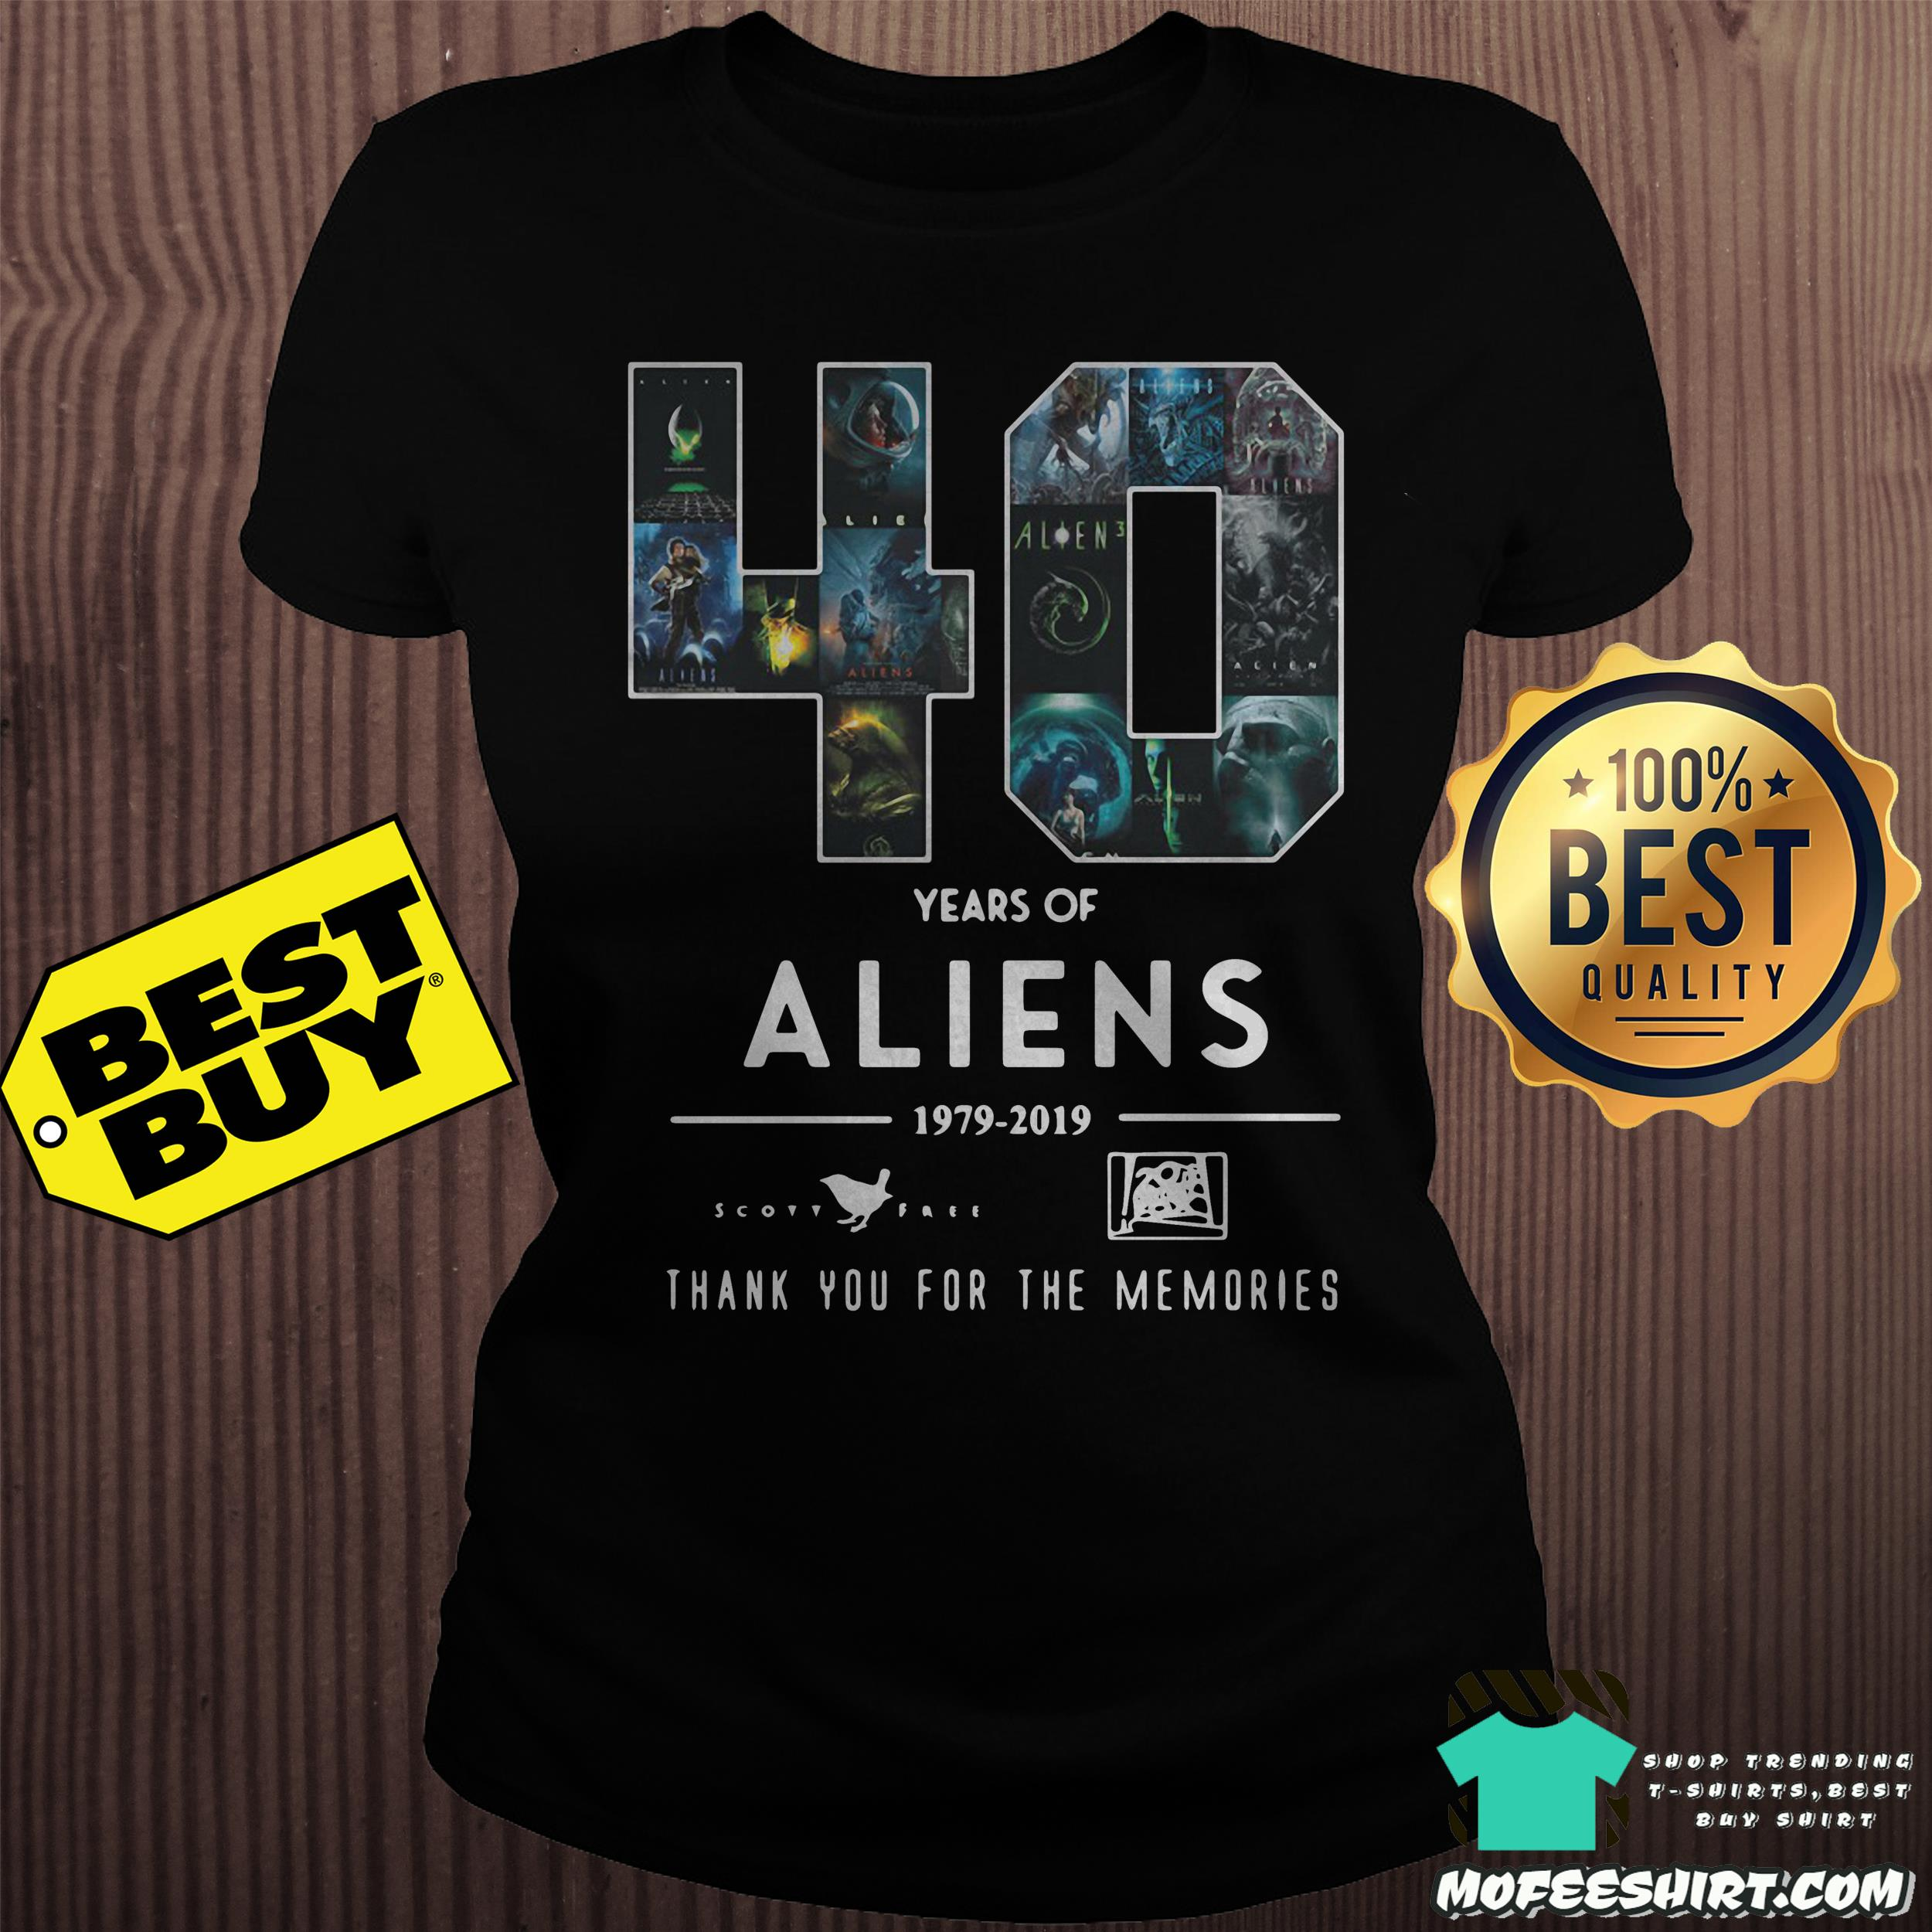 40 years of aliens 1979 2019 thank you for the memories ladies tee 1 - 40 years of aliens 1979-2019 thank you for the memories shirt